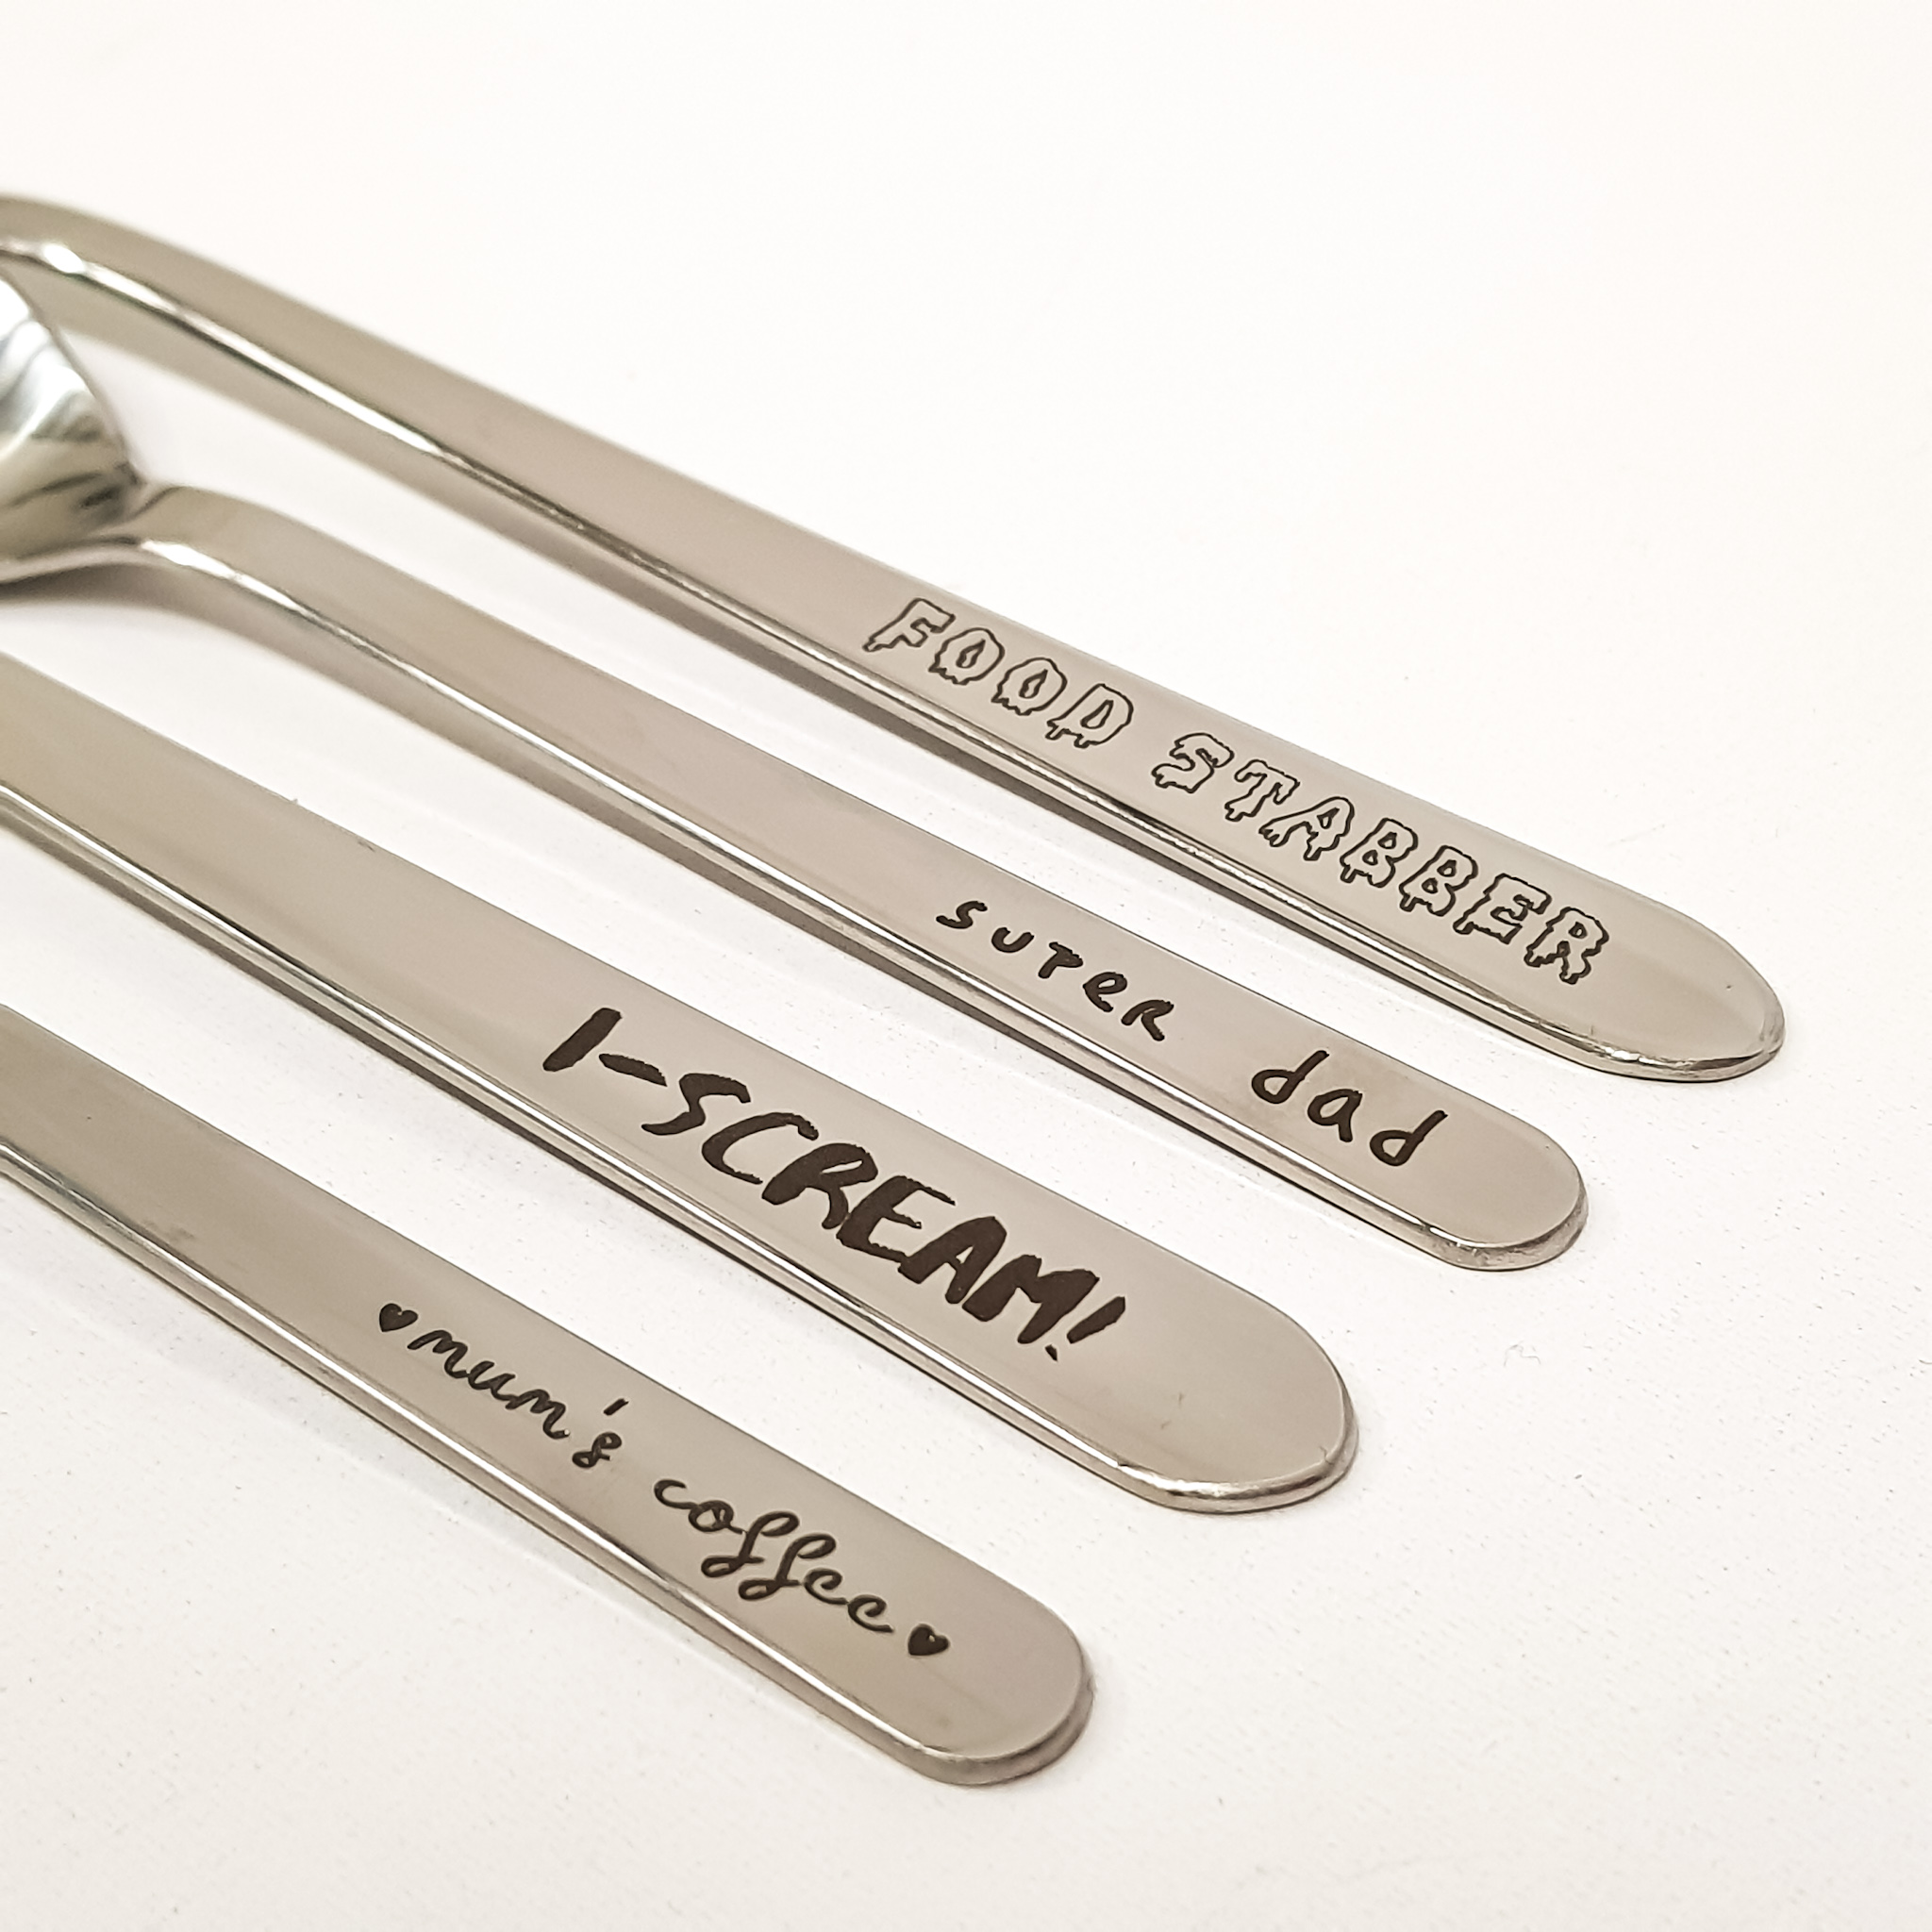 Laser Engraved Cutlery with puns and cute sayings